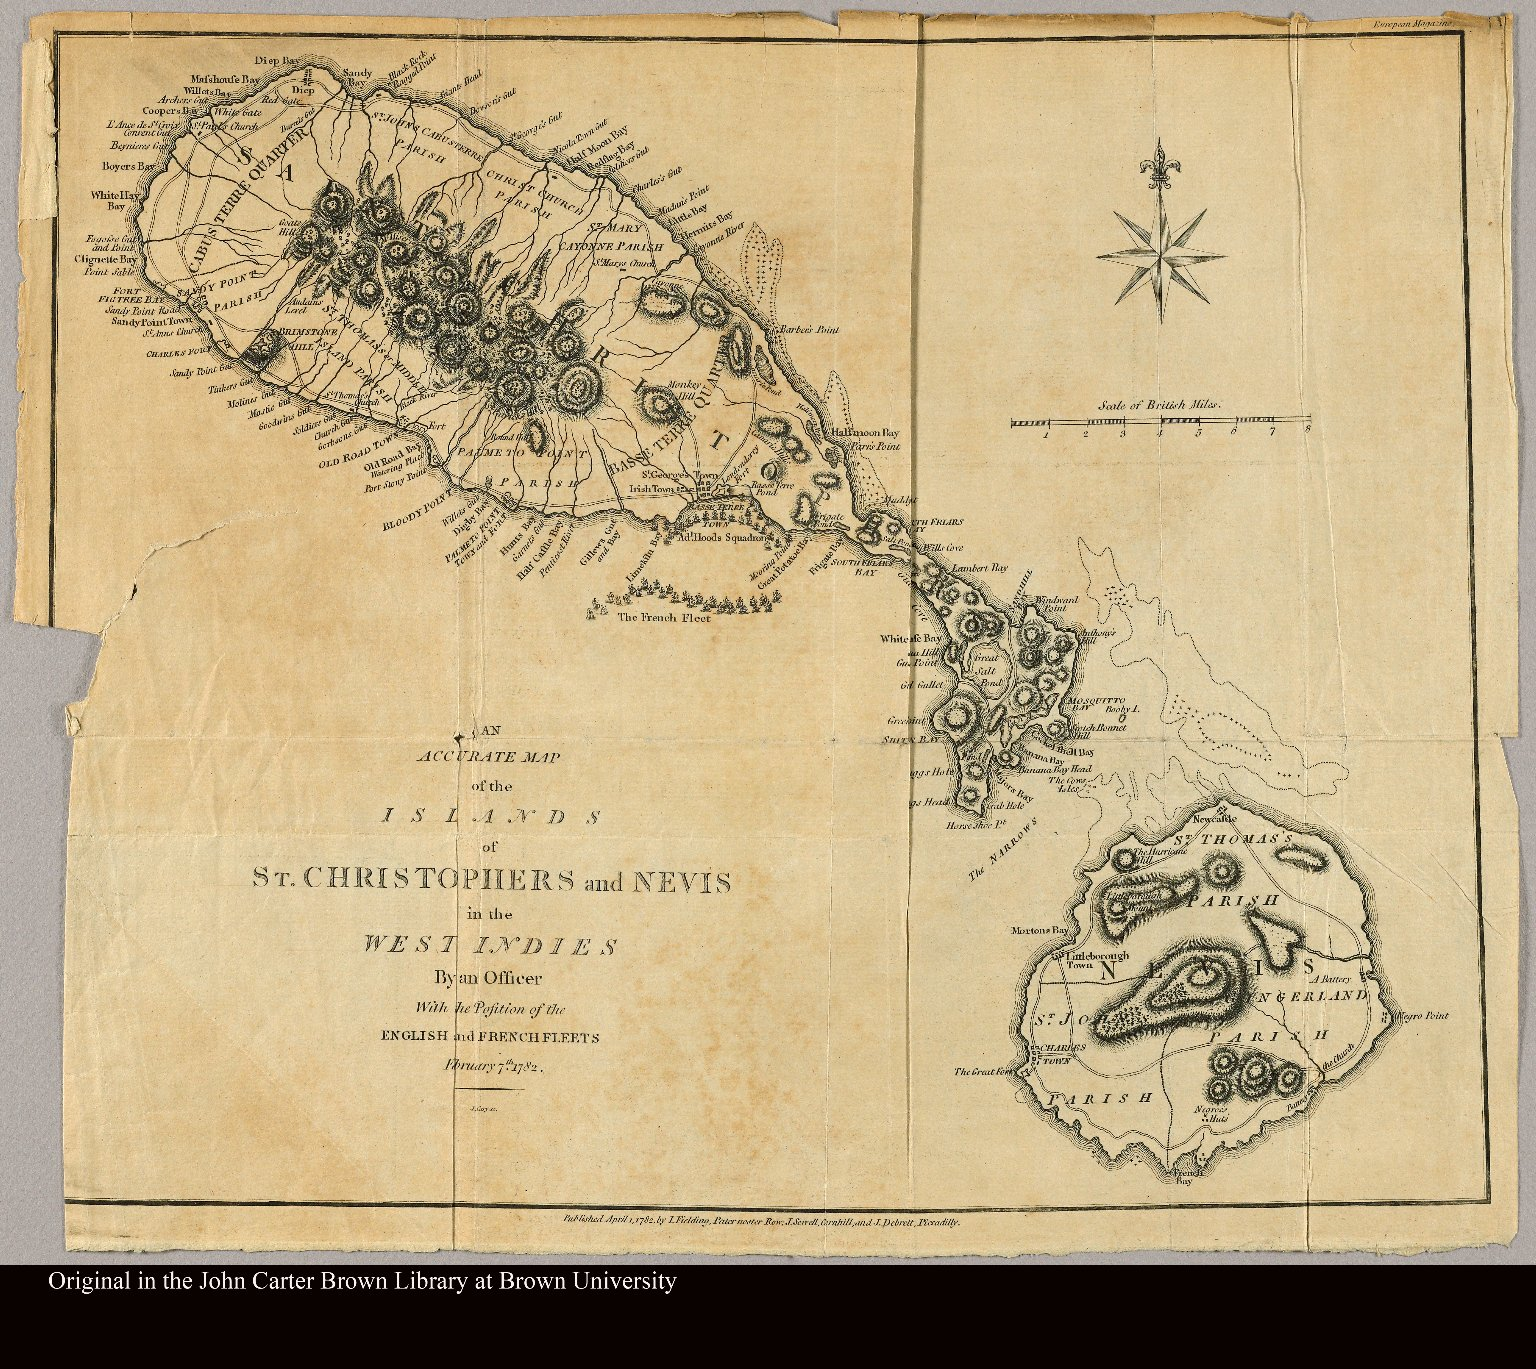 An accurate map of the islands of St. Christophers and Nevis in the West Indies